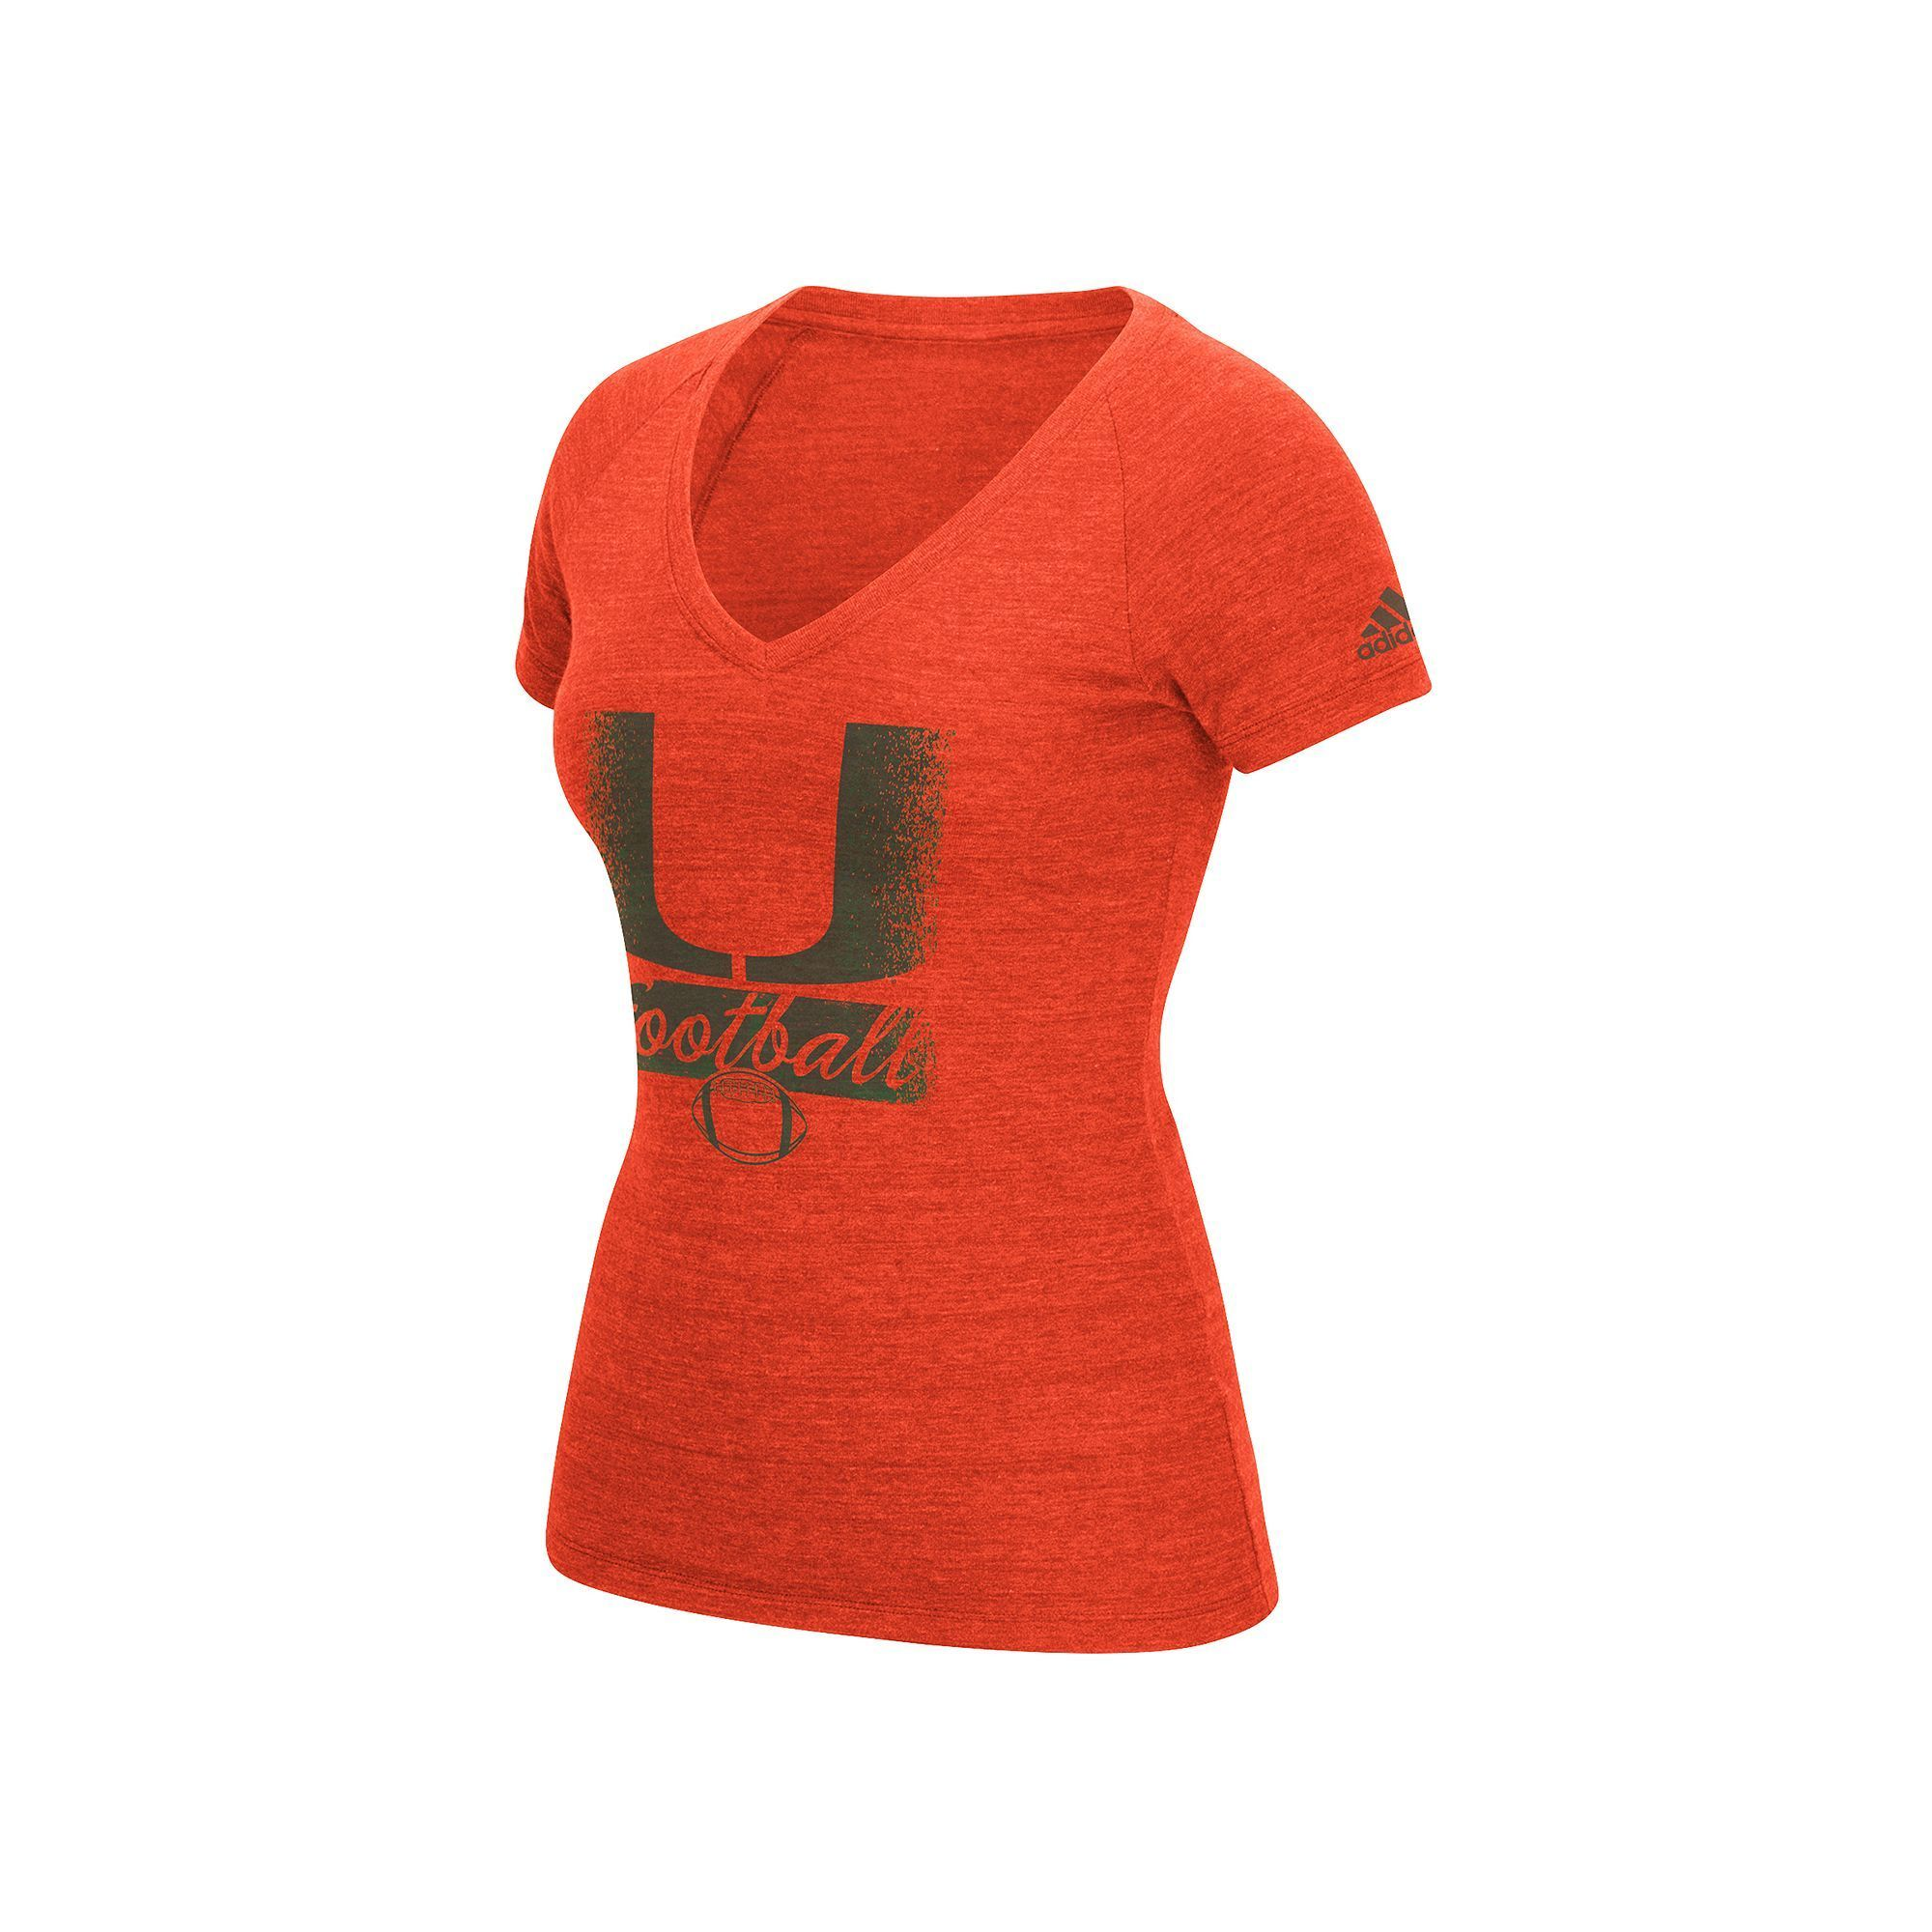 21b2066e8d Women's adidas Miami Hurricanes Football Tee | Products | Hurricanes ...